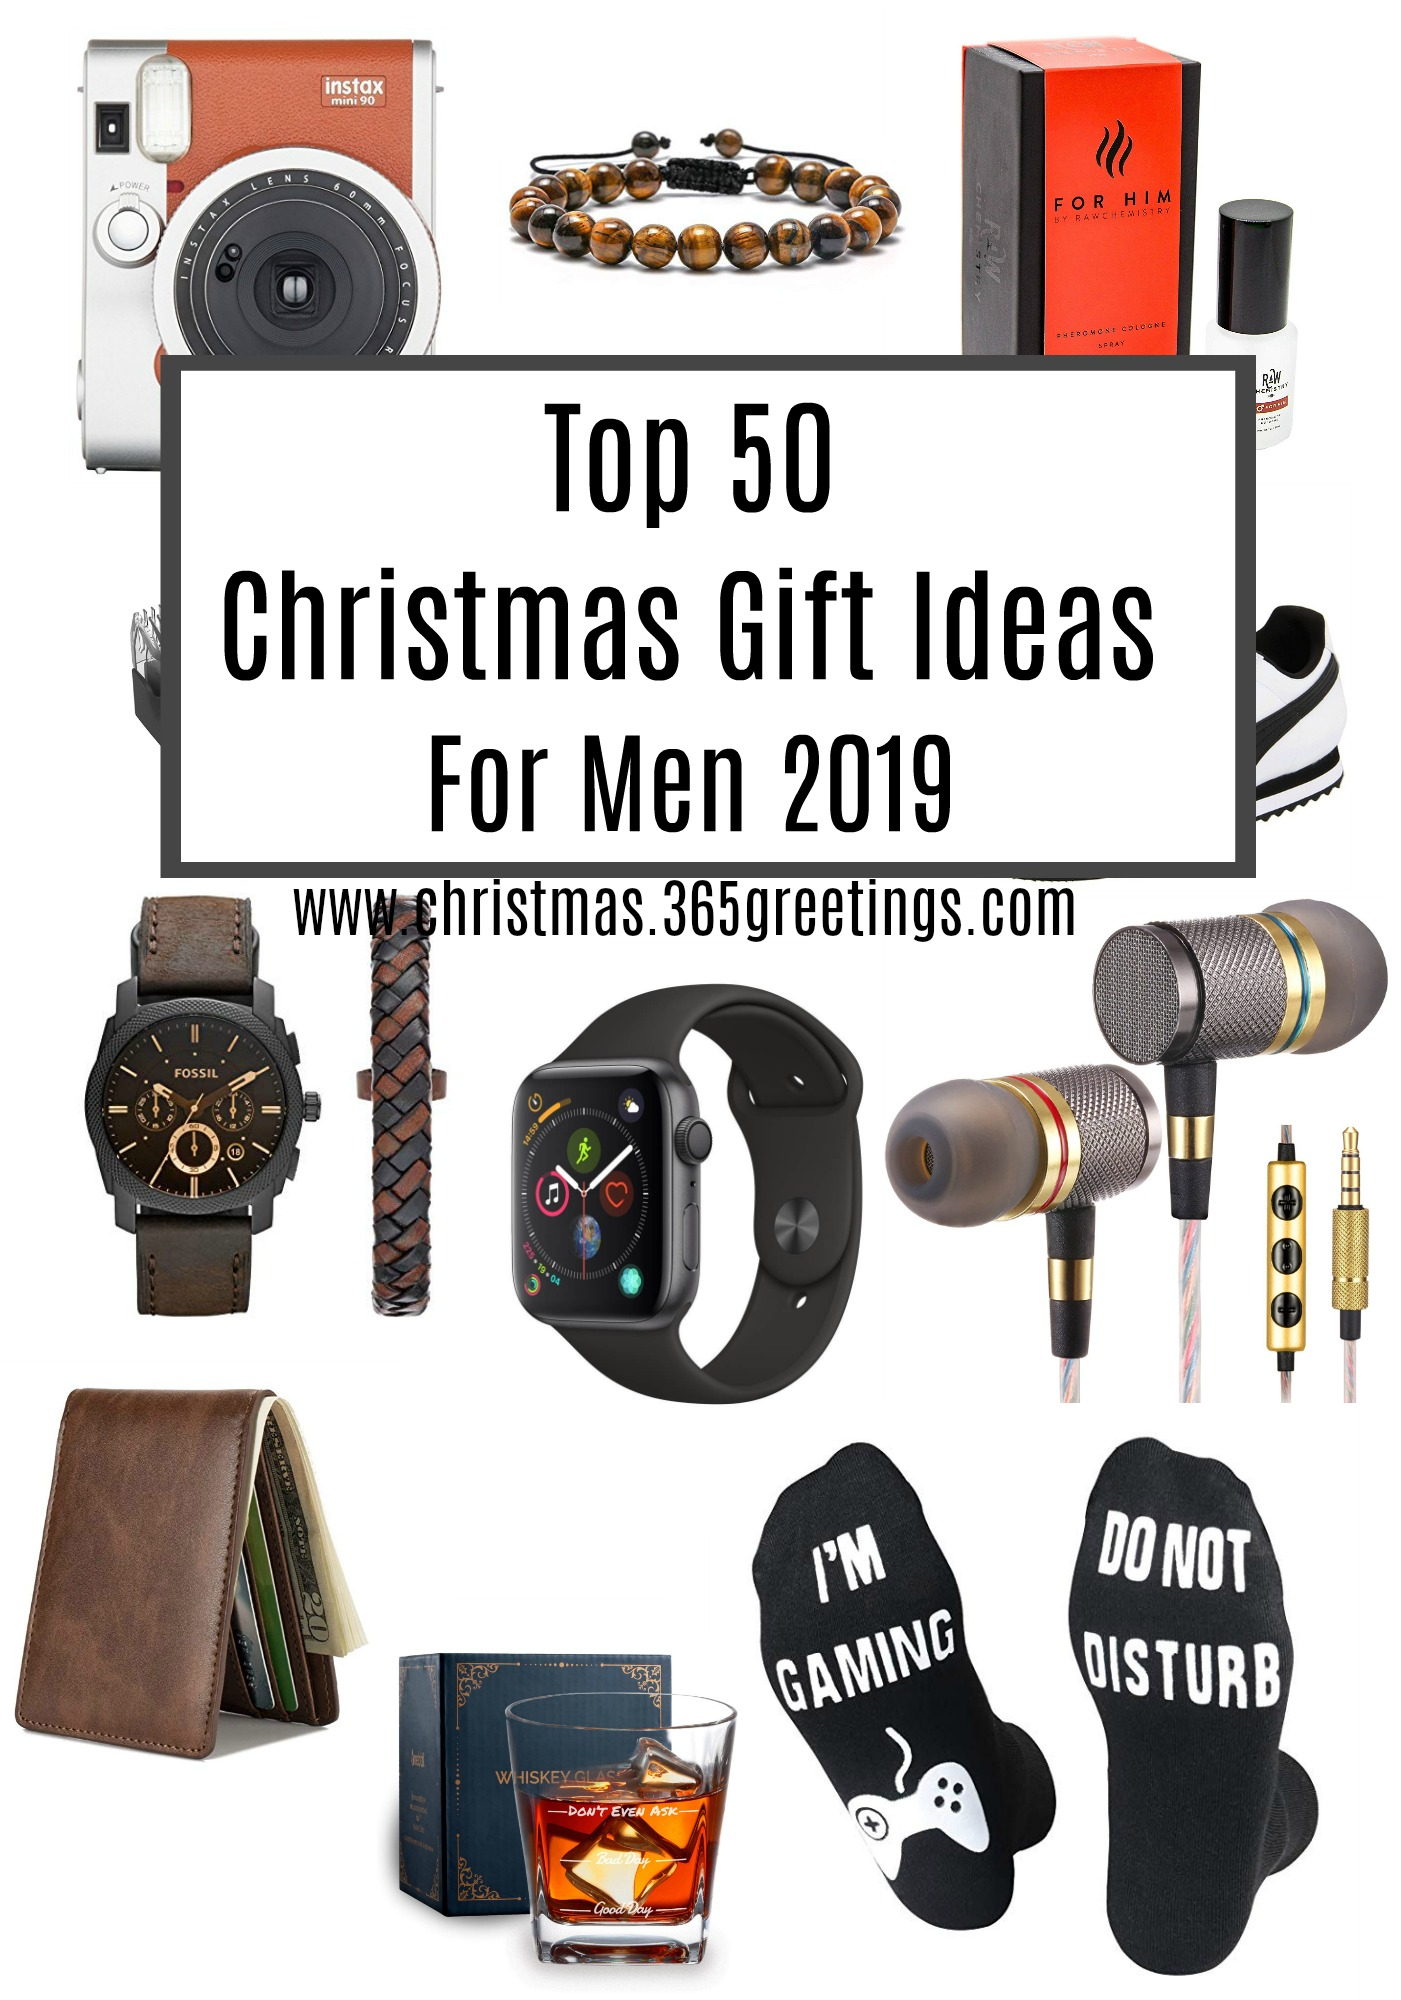 Best Christmas Gifts 2020.Top Christmas Gifts For Men 2019 2020 Christmas